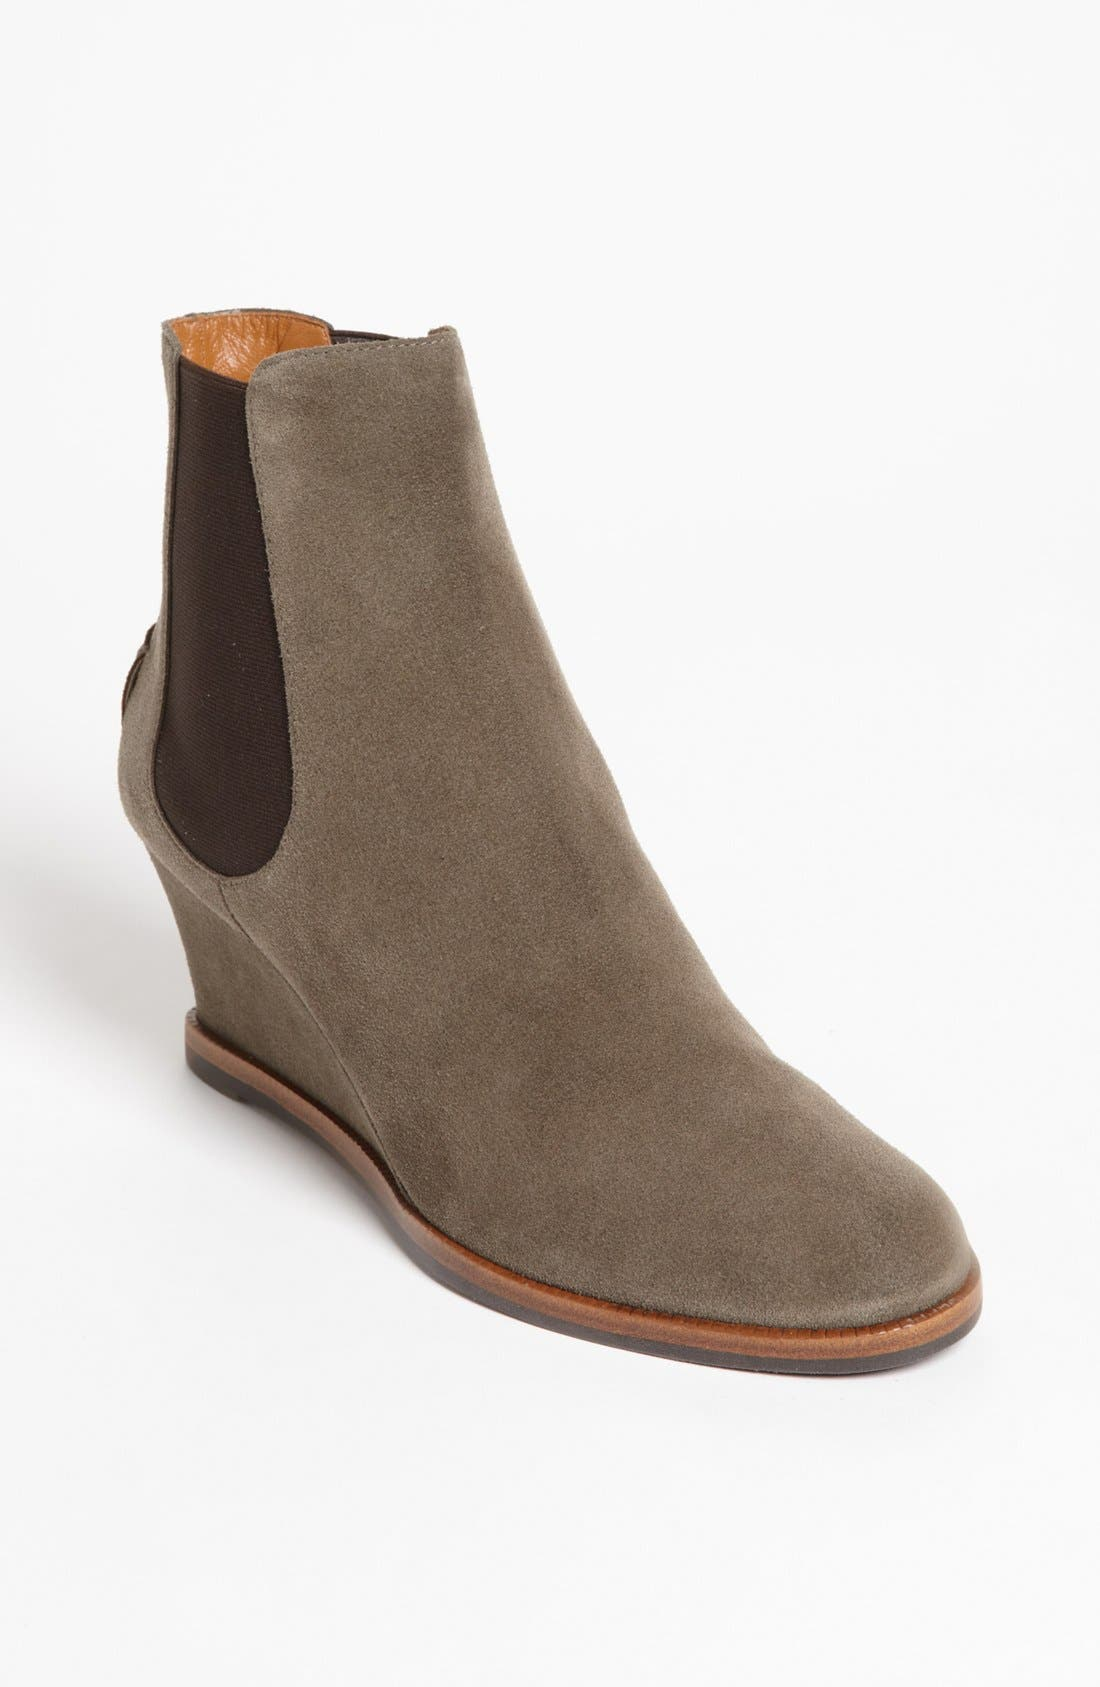 Alternate Image 1 Selected - Fendi Wedge Ankle Boot